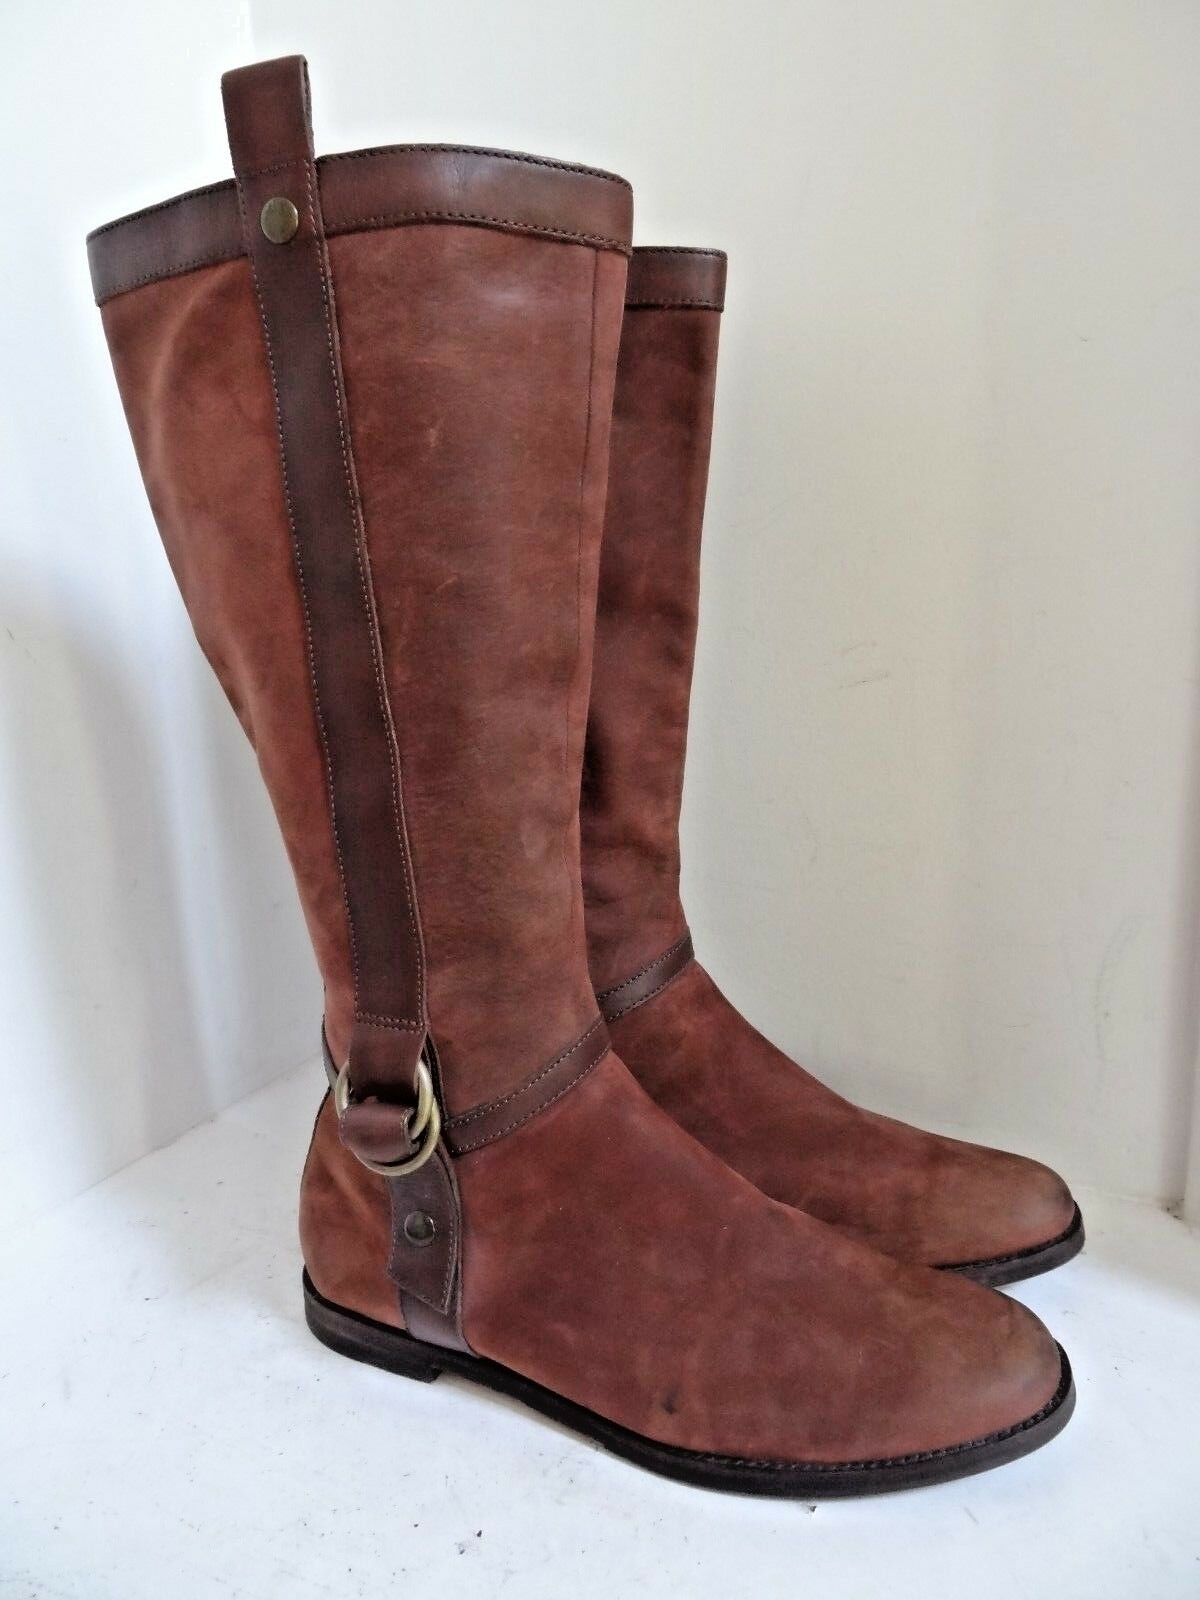 COLE HAAN (E10 D32471) Brown Leather  Knee High Boots Women's - SIZE 10B - NICE